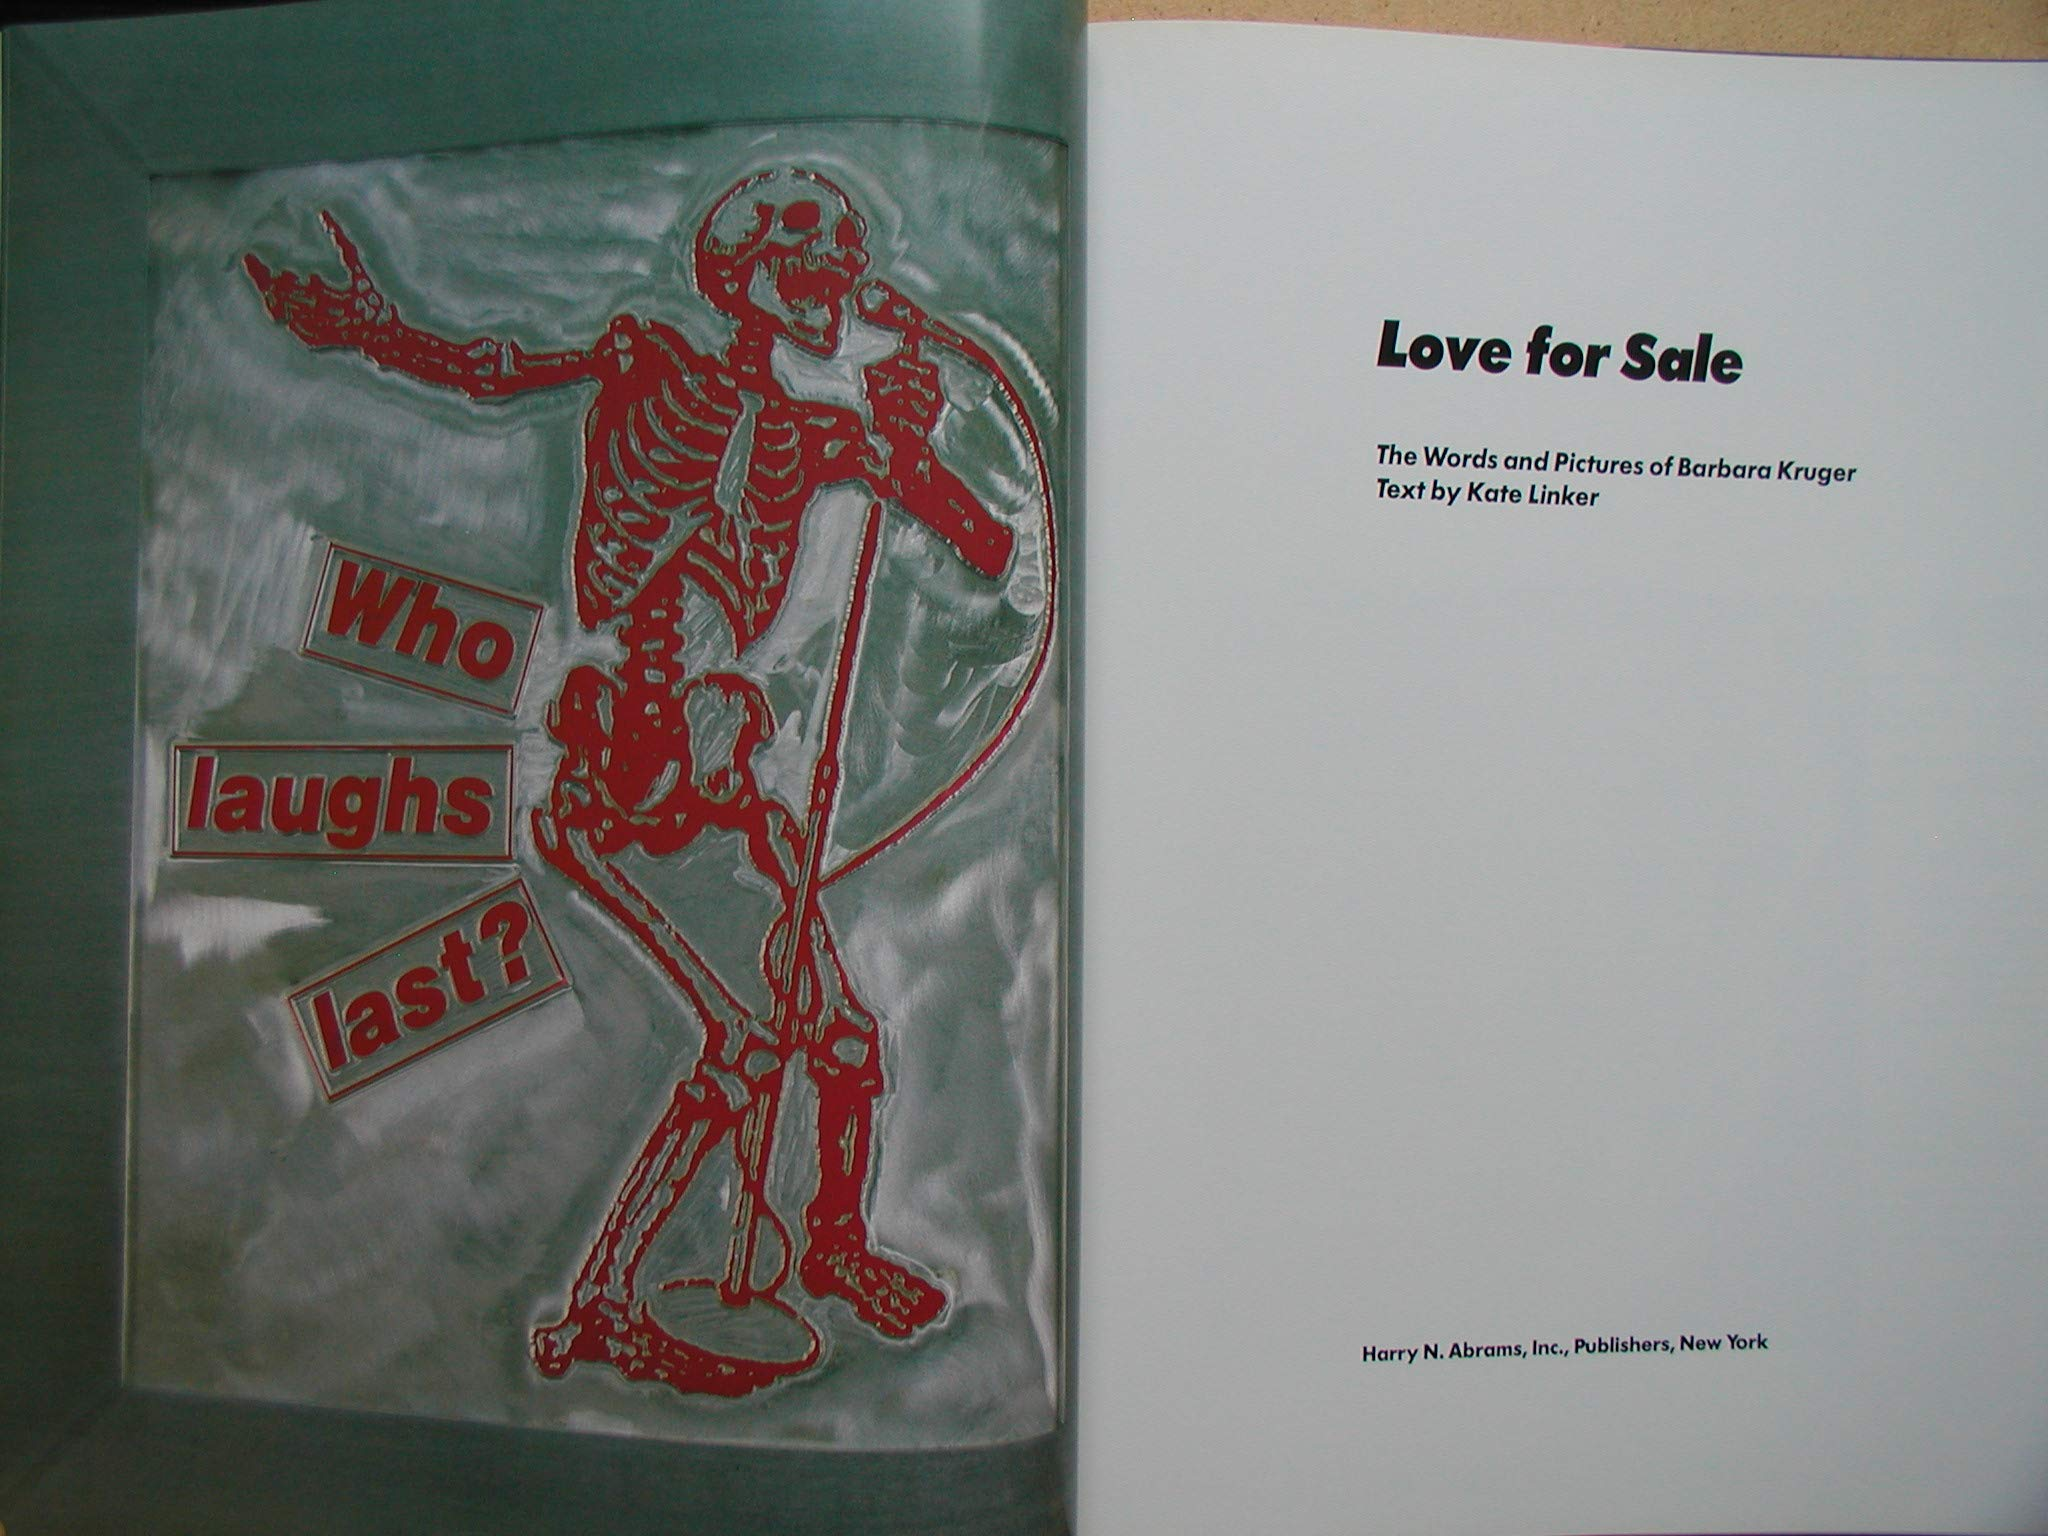 Love for Sale The Words and Pictures of Barbara Kruger